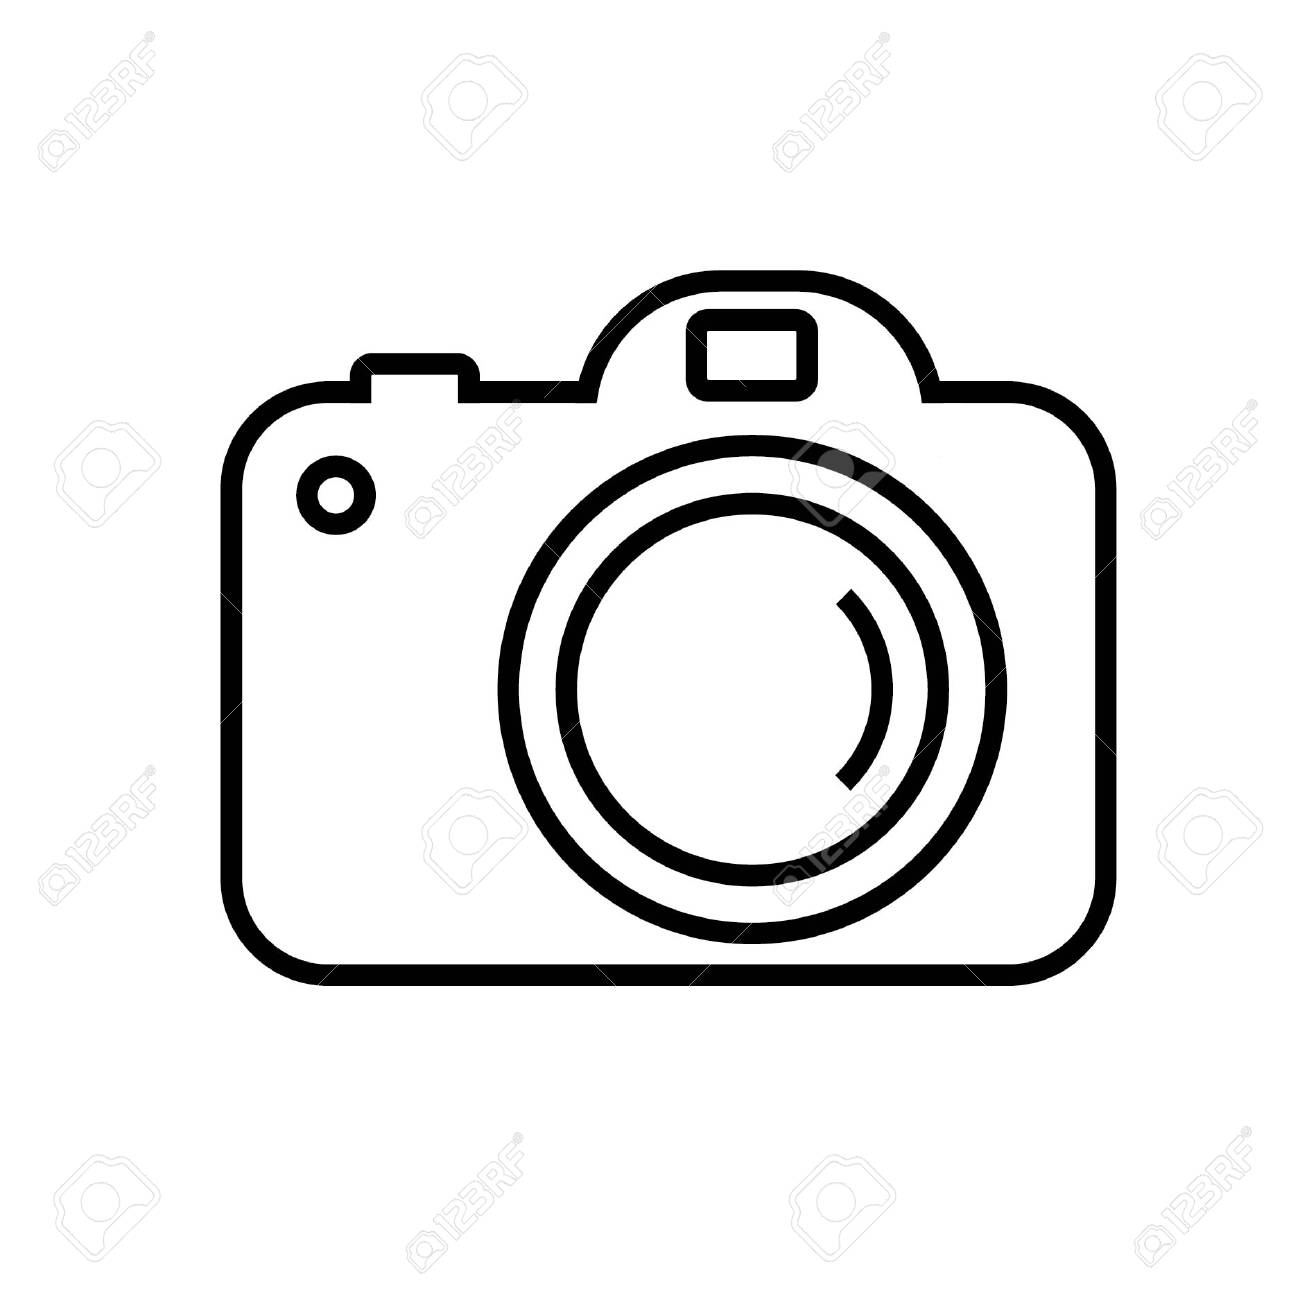 Digital Camera Clipart Black And White.